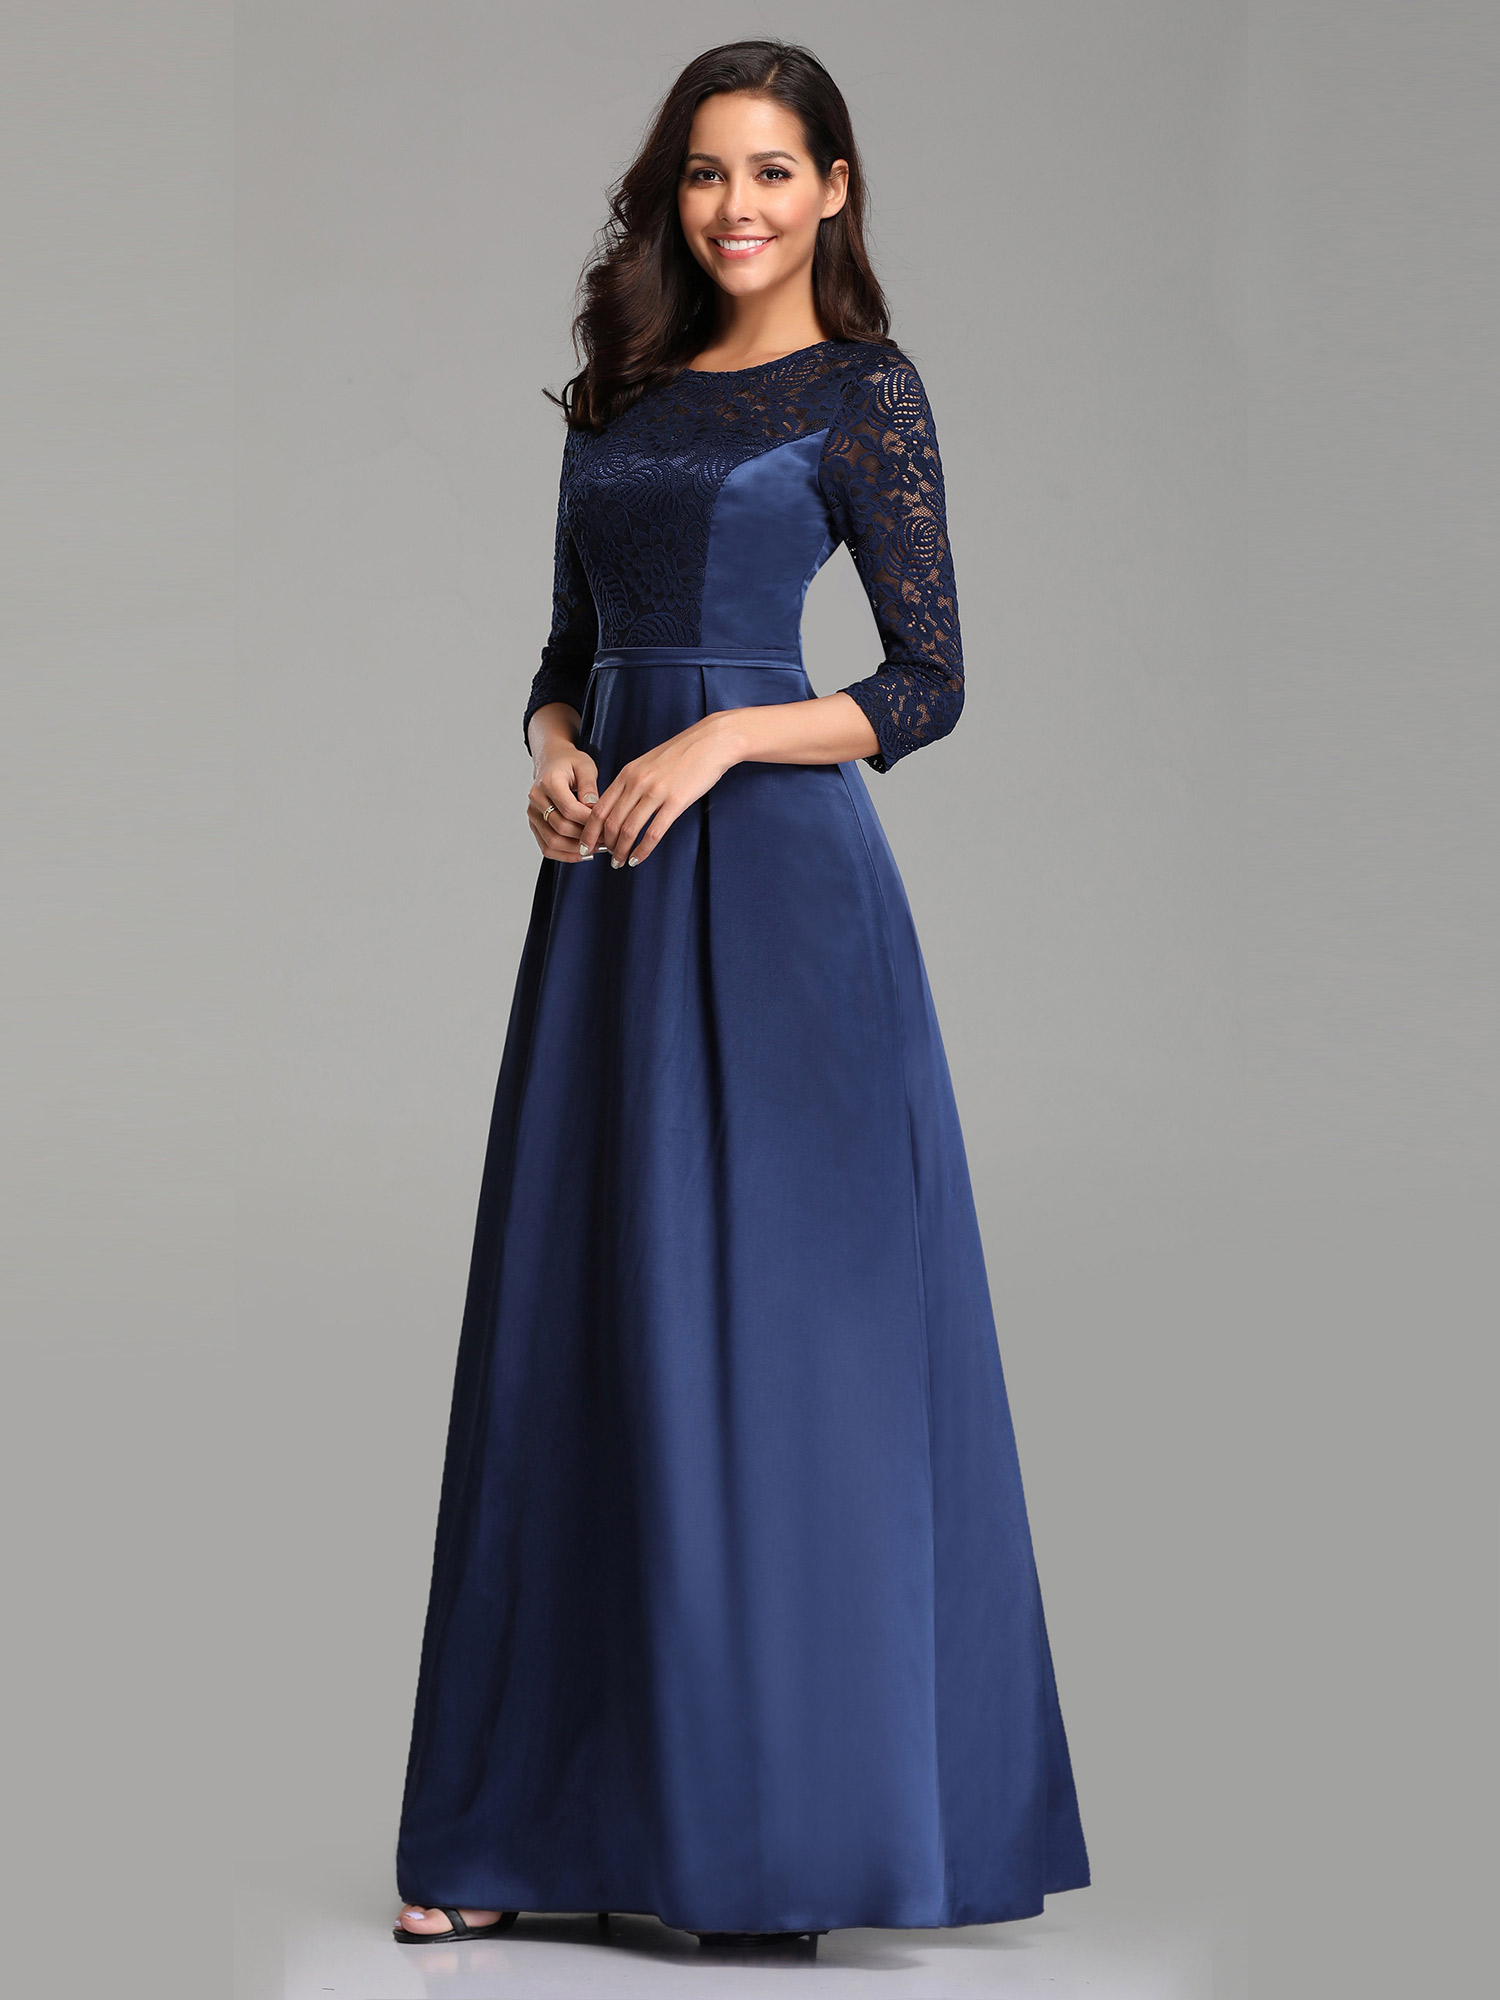 Lace Sleeve Formal Evening Gowns